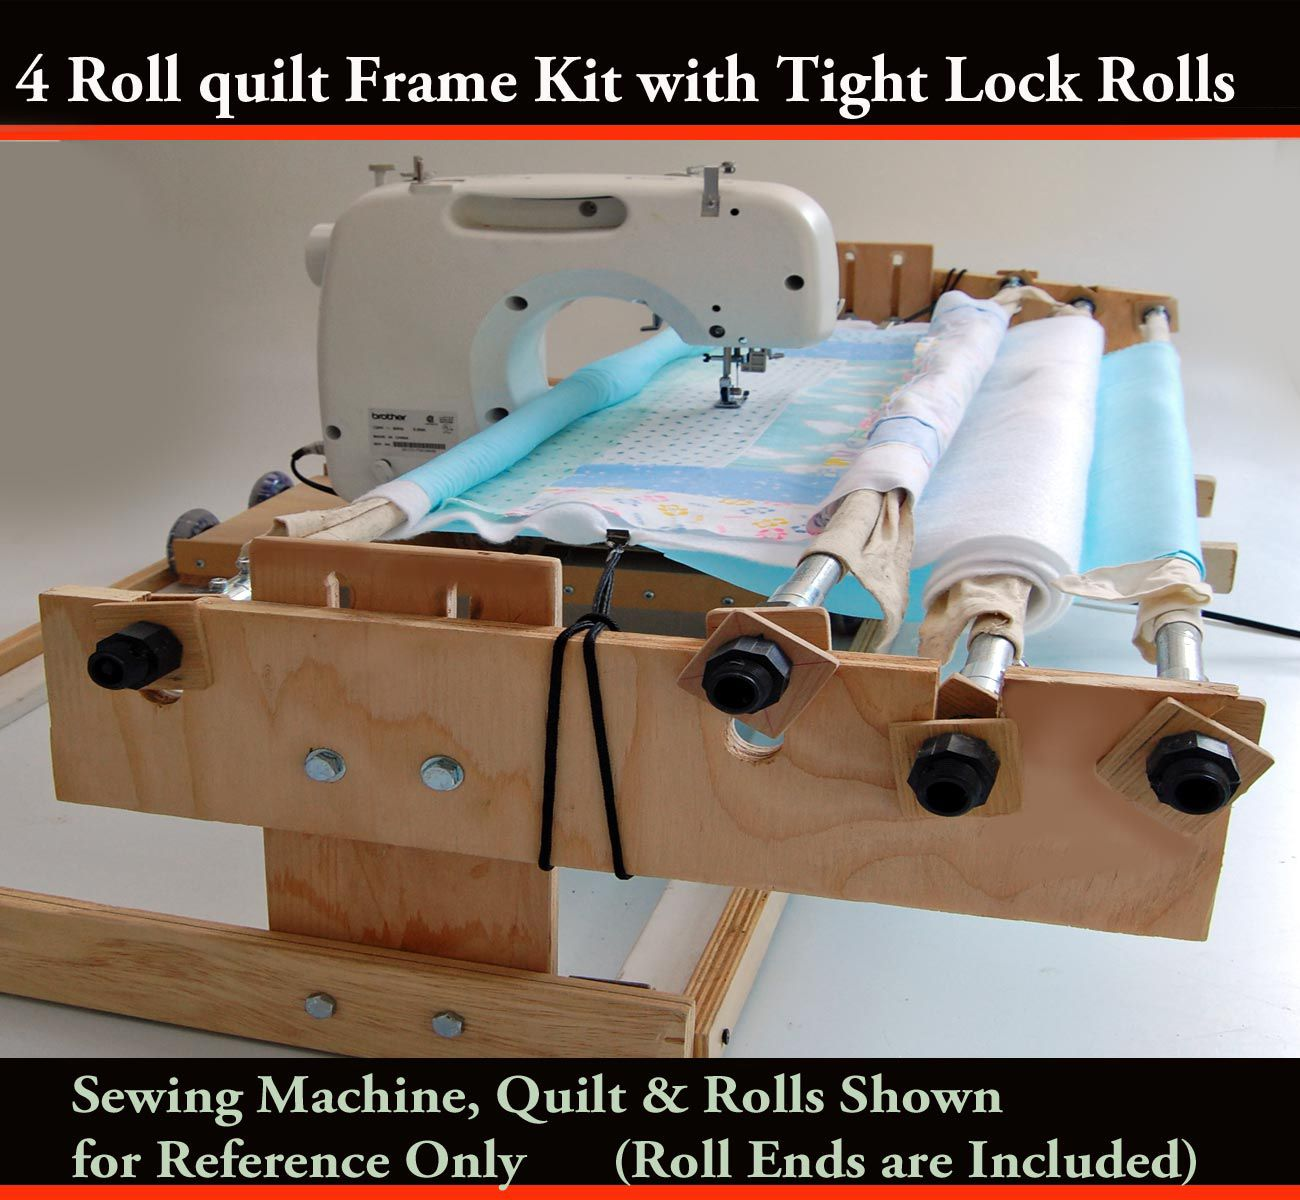 Machine Quilt Frame Machine Quilting With A Home Sewing Machine New Kit For 2016 Diy Quilting Frame For Sewing Machine Quilting Frames Diy Quilting Frame